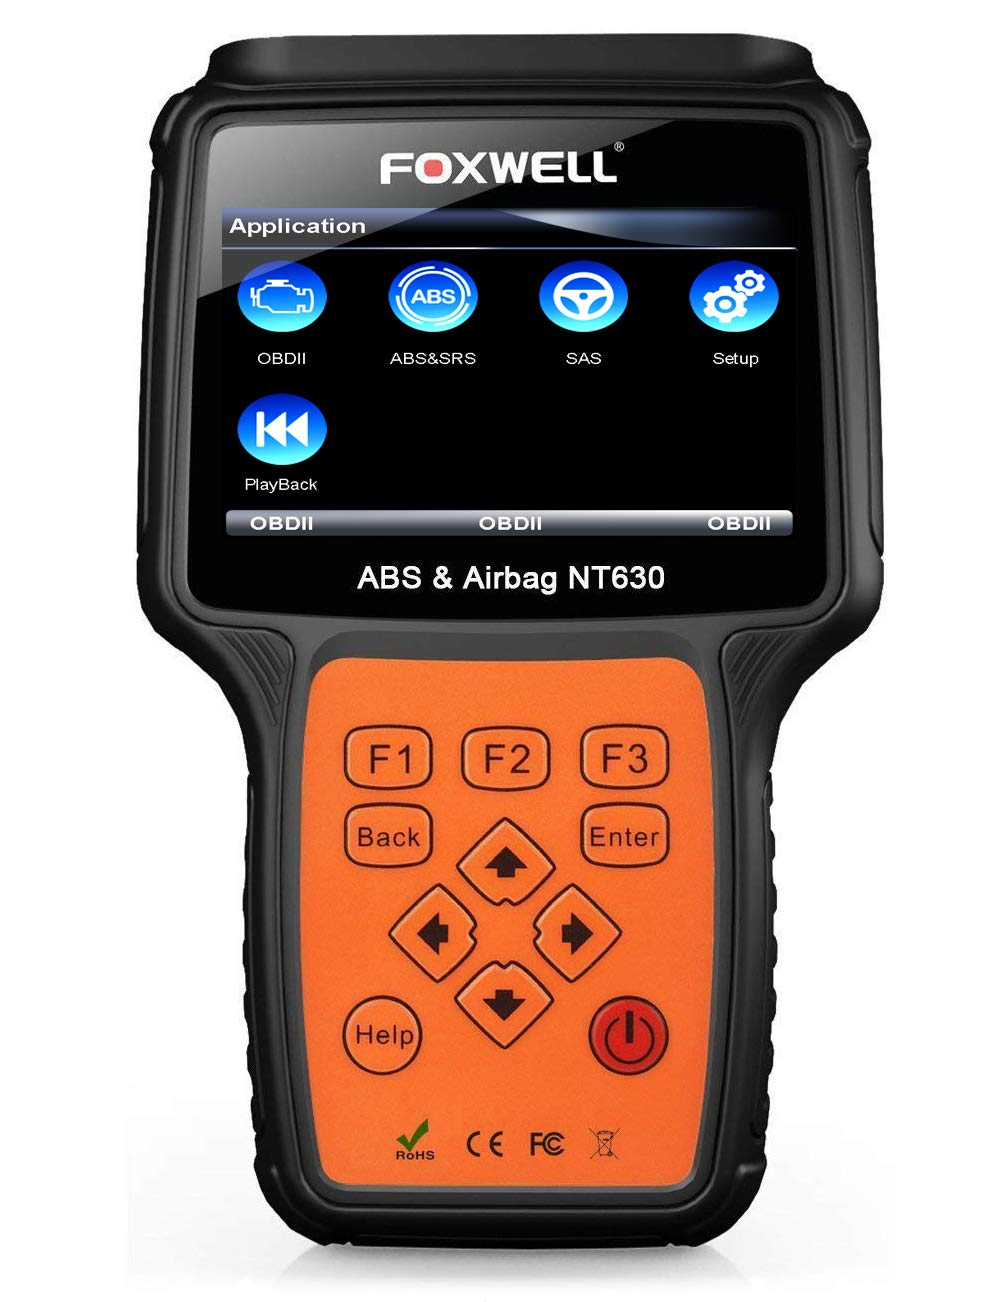 Foxwell Nt630 Plus Srs Automotive Obd2 Scan Obd Ii Abs 2000 Acura Rl Port Location Bleeding Diagnostic Scanners Air Bag Engine Light Reset Tool